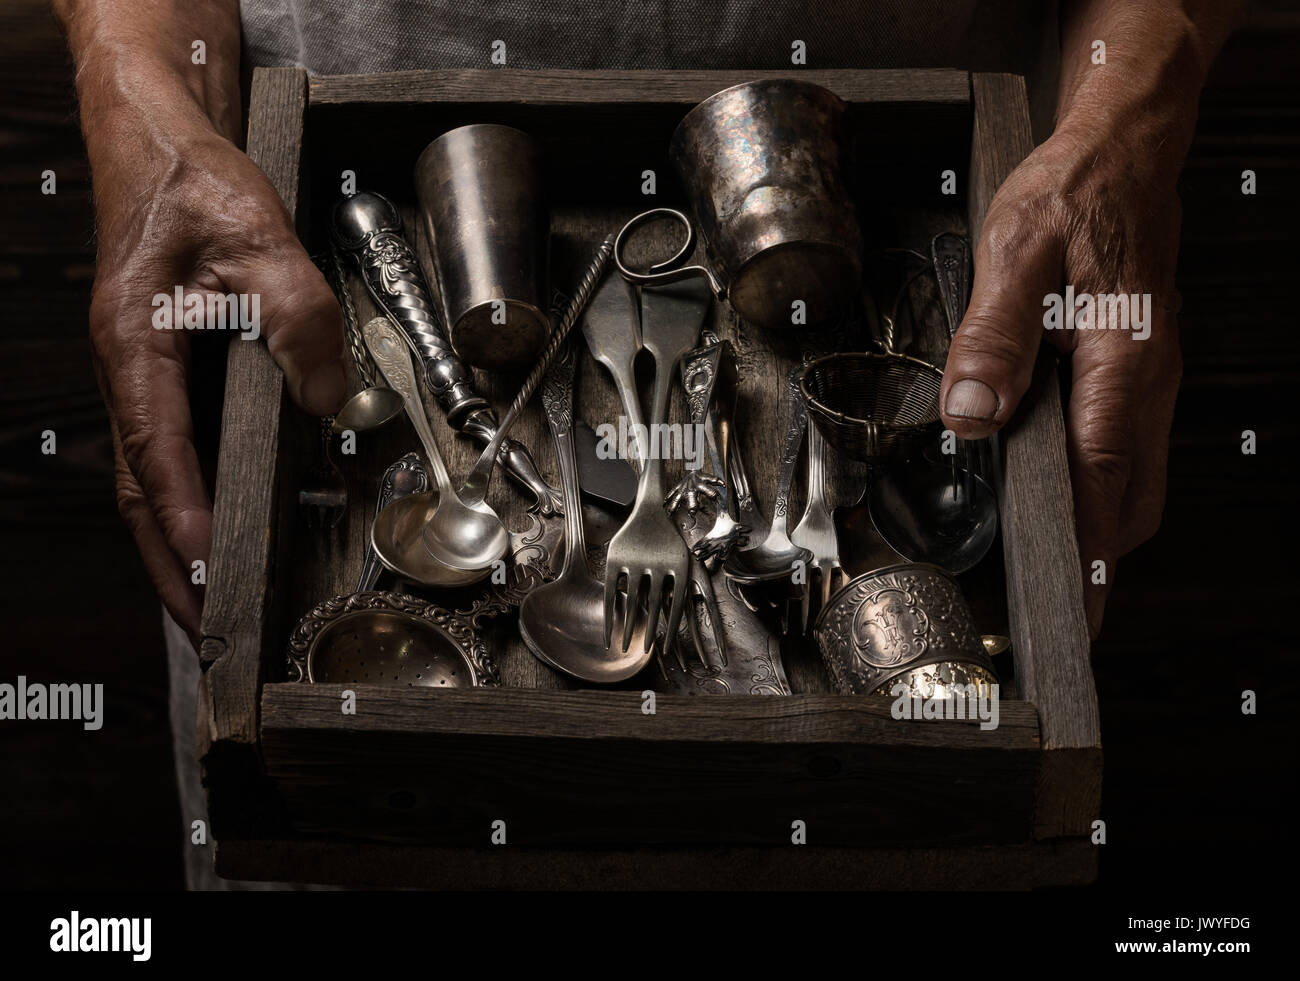 Man holding a wooden box with old silverware - Stock Image